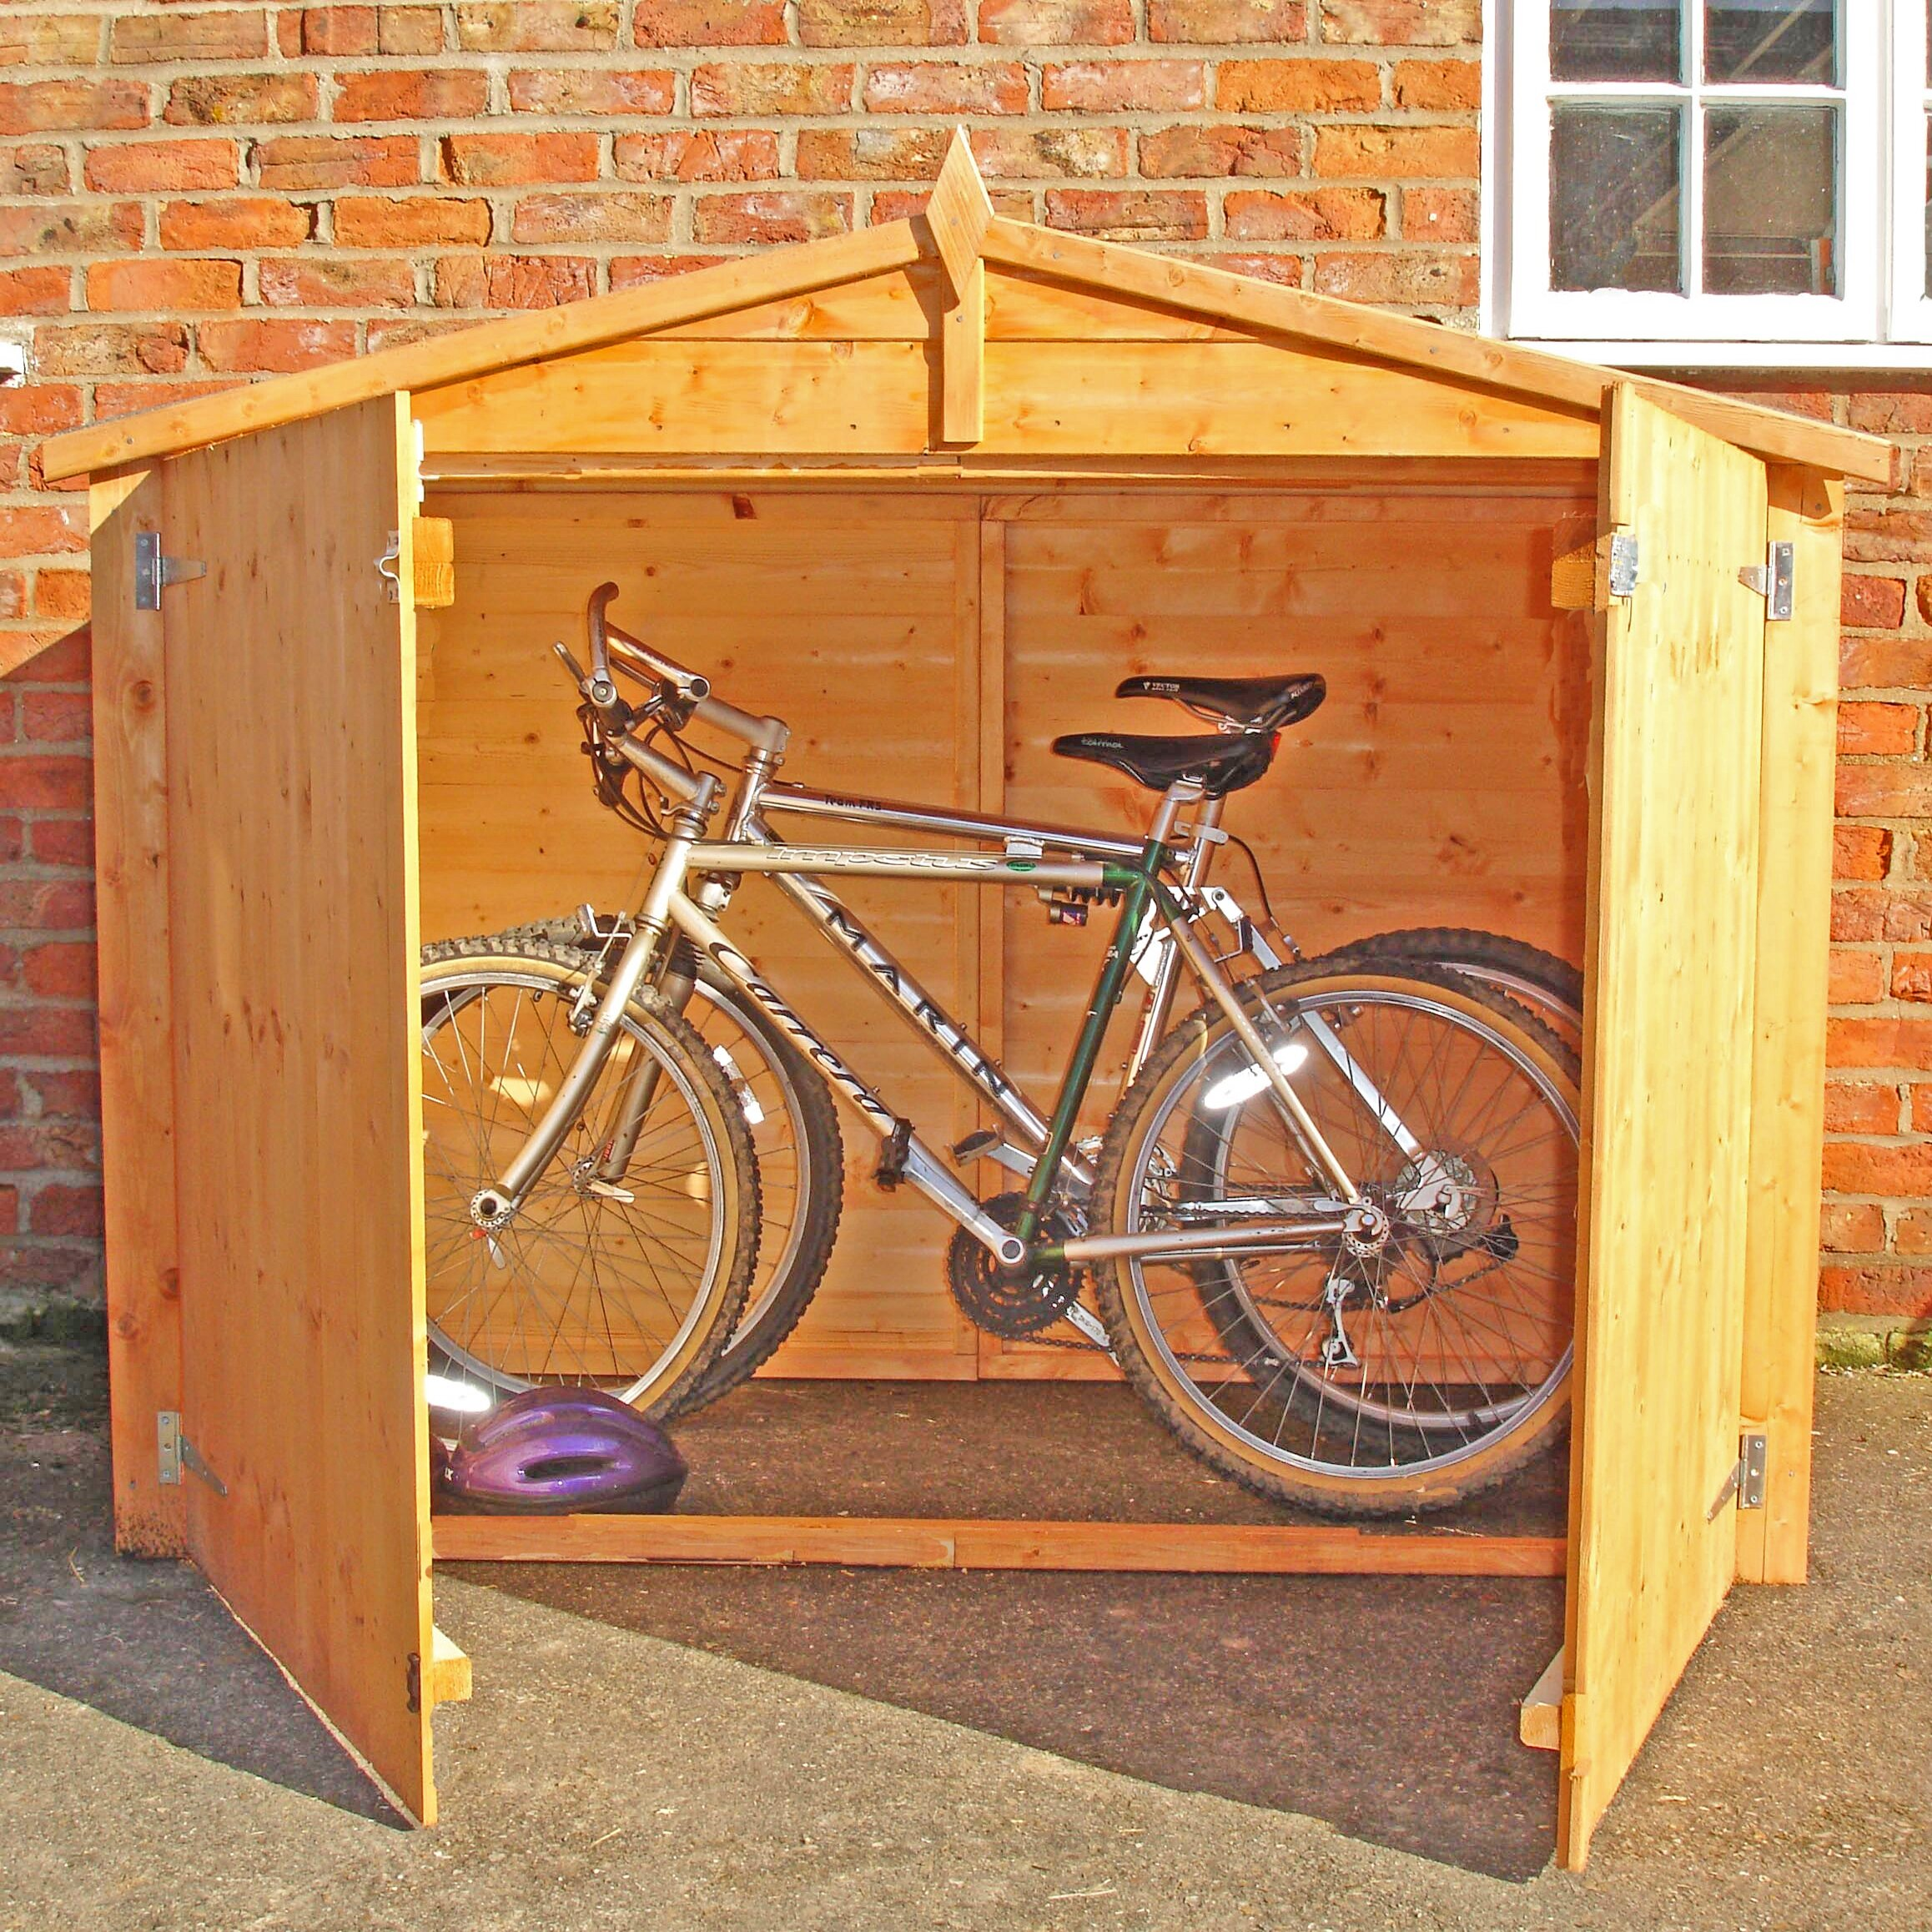 dcor design 7 x 3 wooden bike shed. Black Bedroom Furniture Sets. Home Design Ideas